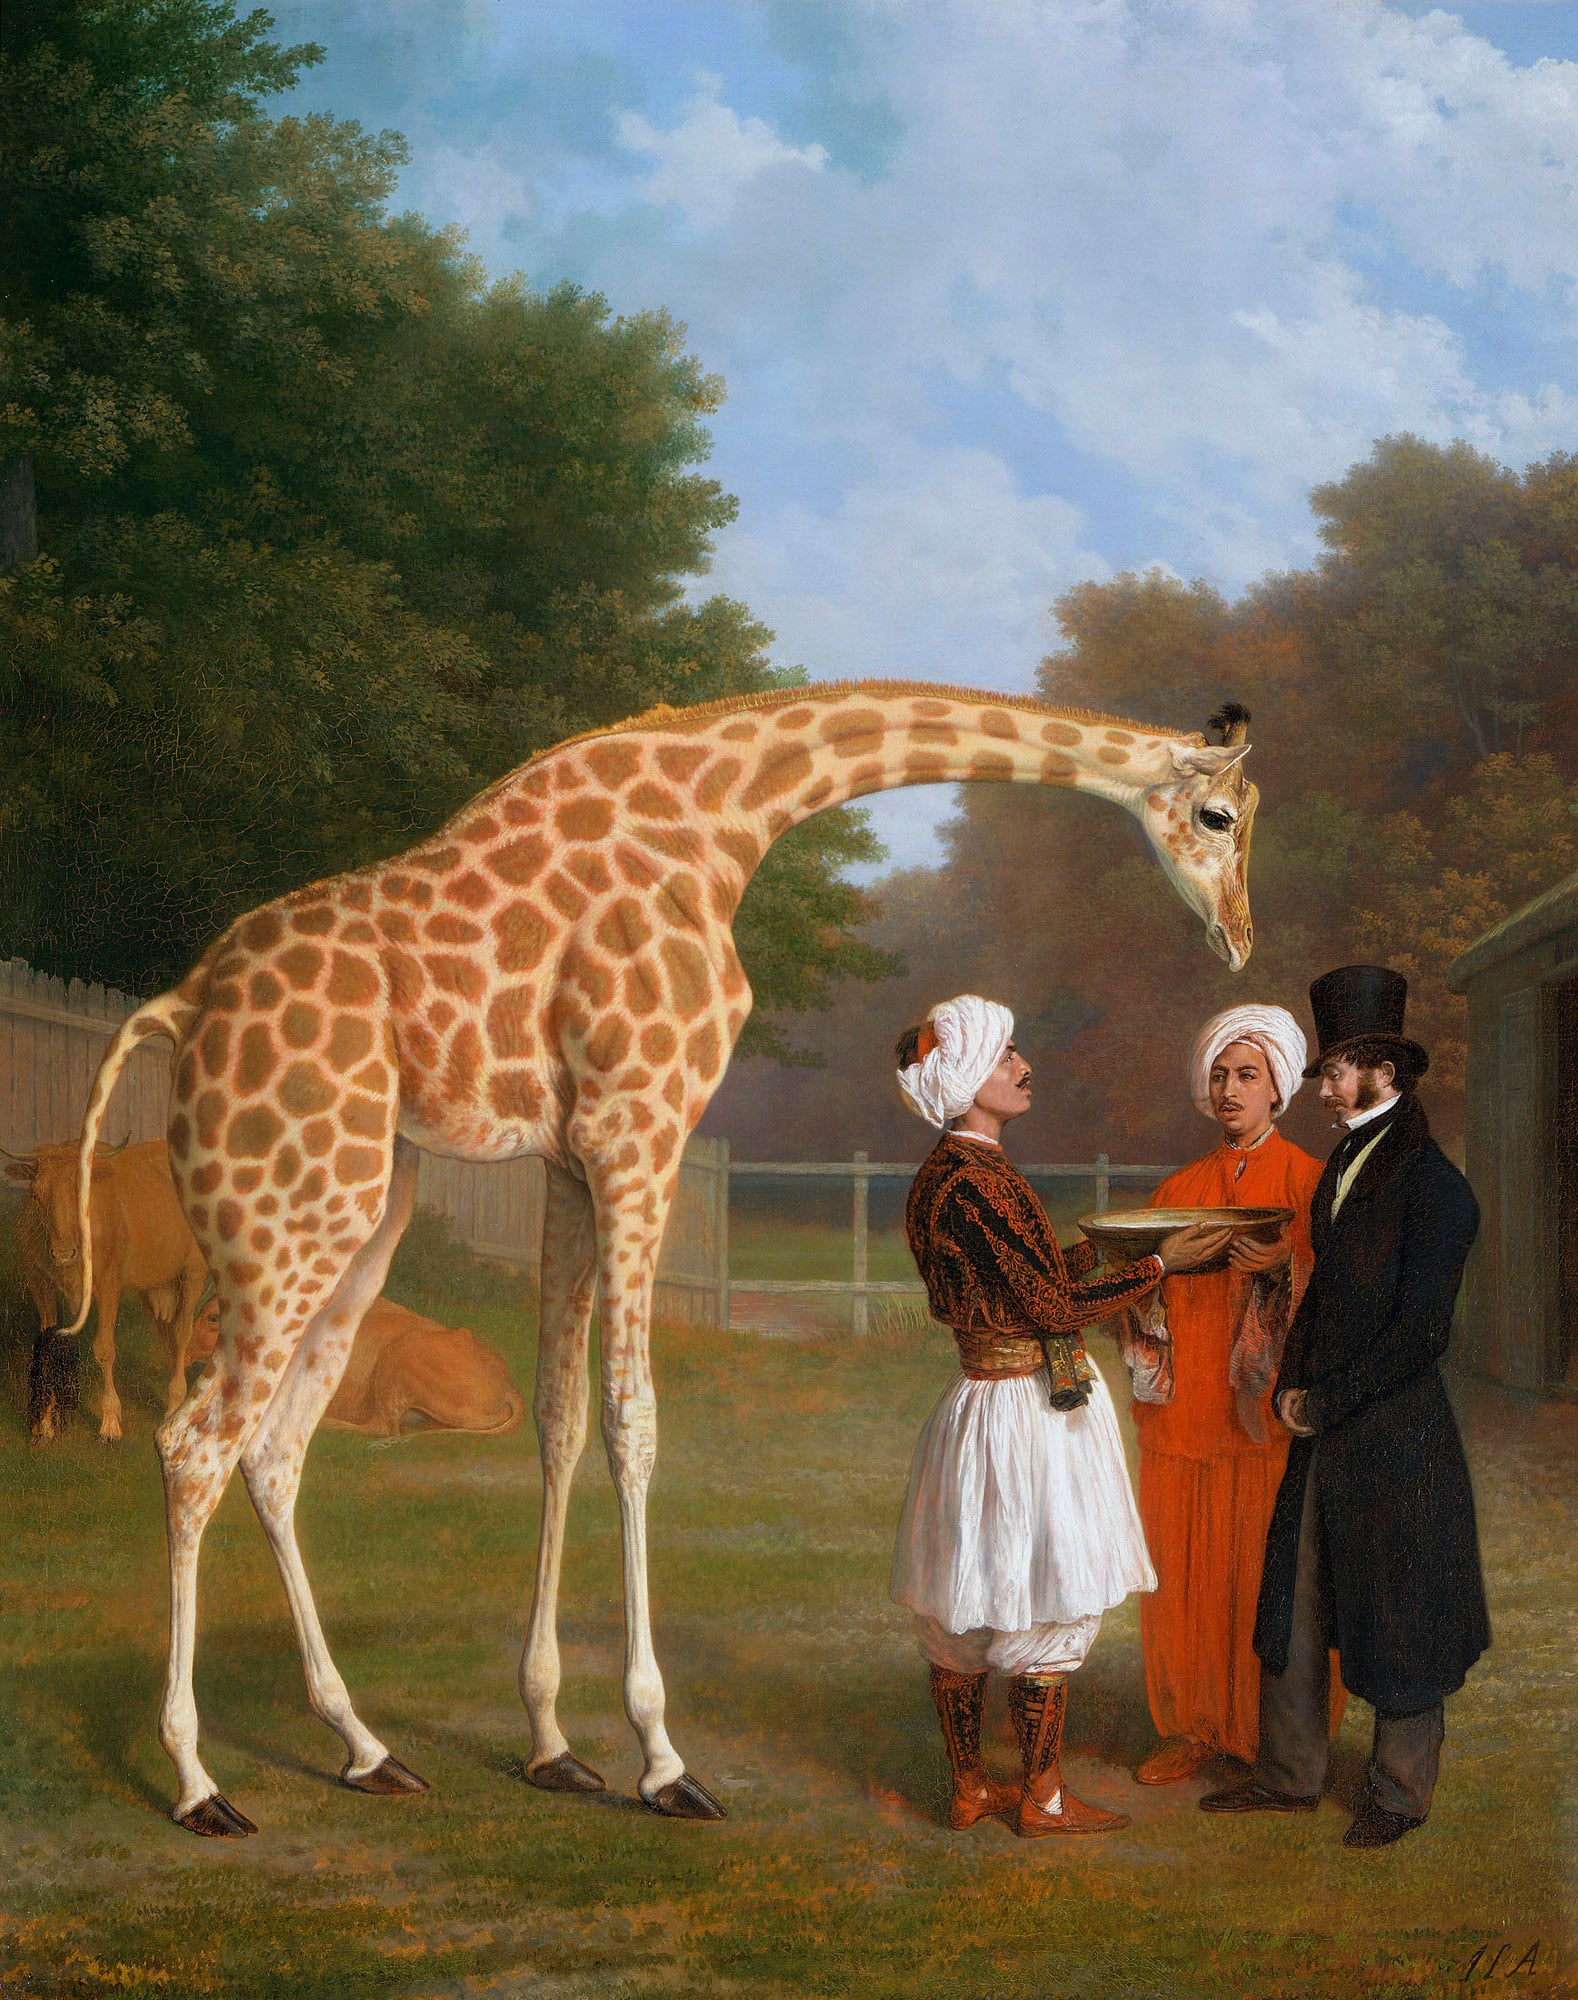 3. Exotic Creatures, Royal Pavilion, free with National Art Pass - Jacques Laurent Agasse, The Nubian Giraffe, 1827. Royal Collection Trust © Her Majesty Queen Elizabeth II